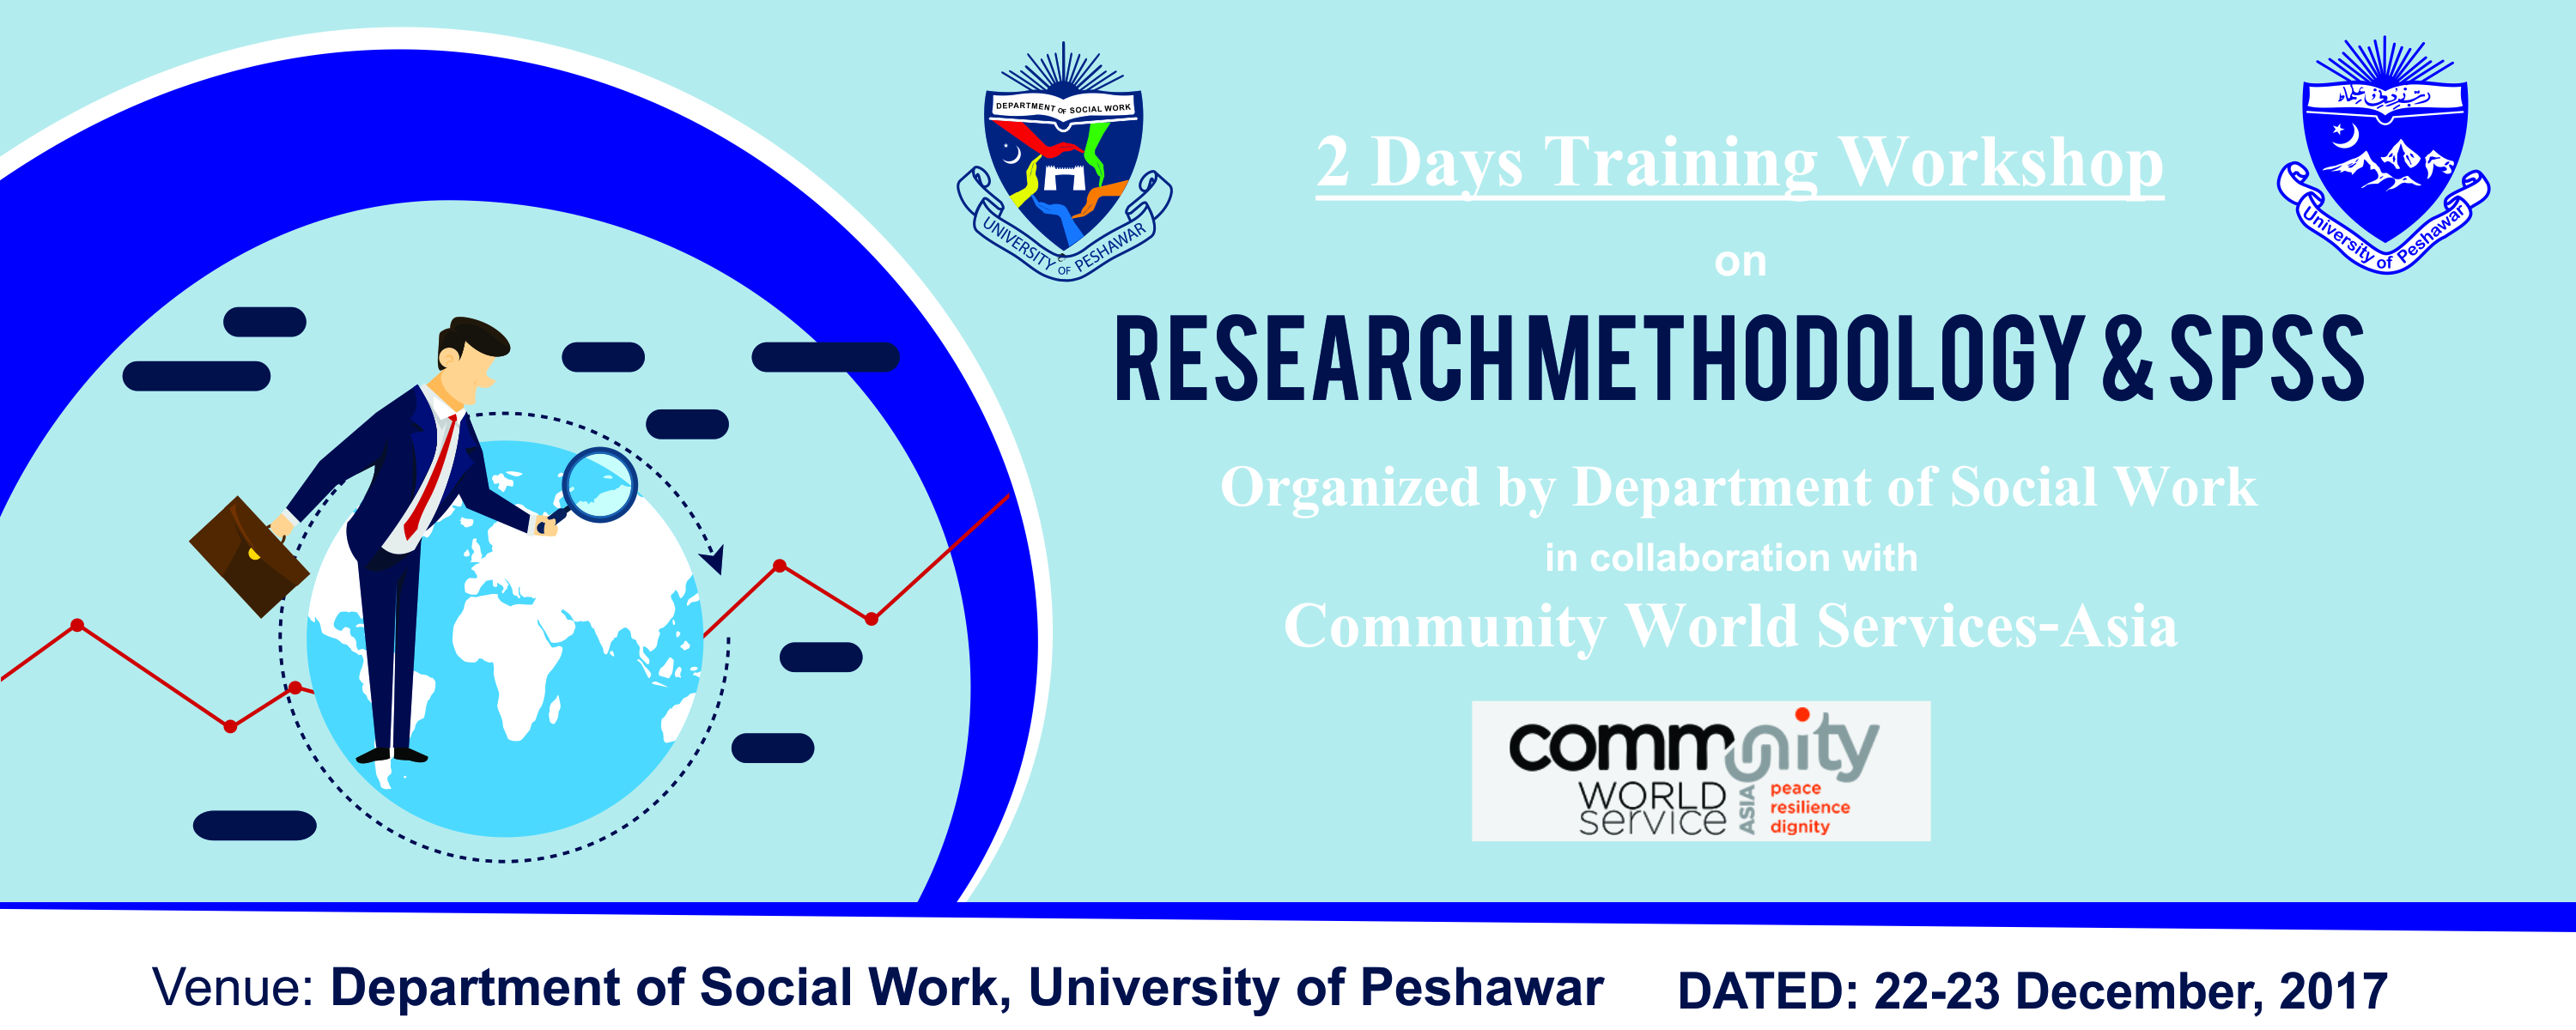 Training Workshop on Research Methodologies and SPSS